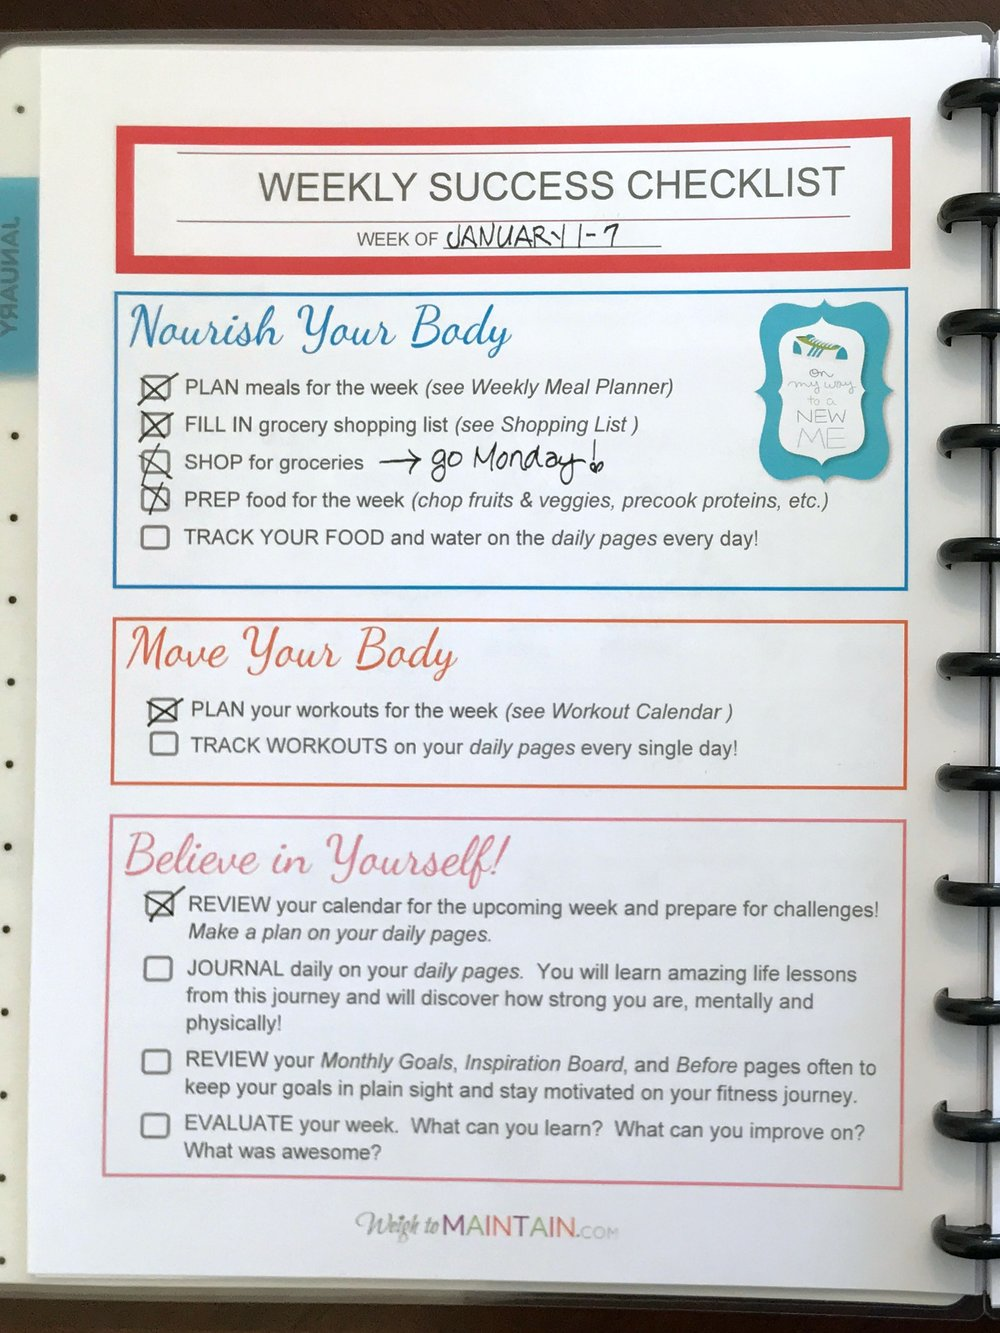 weekly-success-checklist-fit-planner.jpg